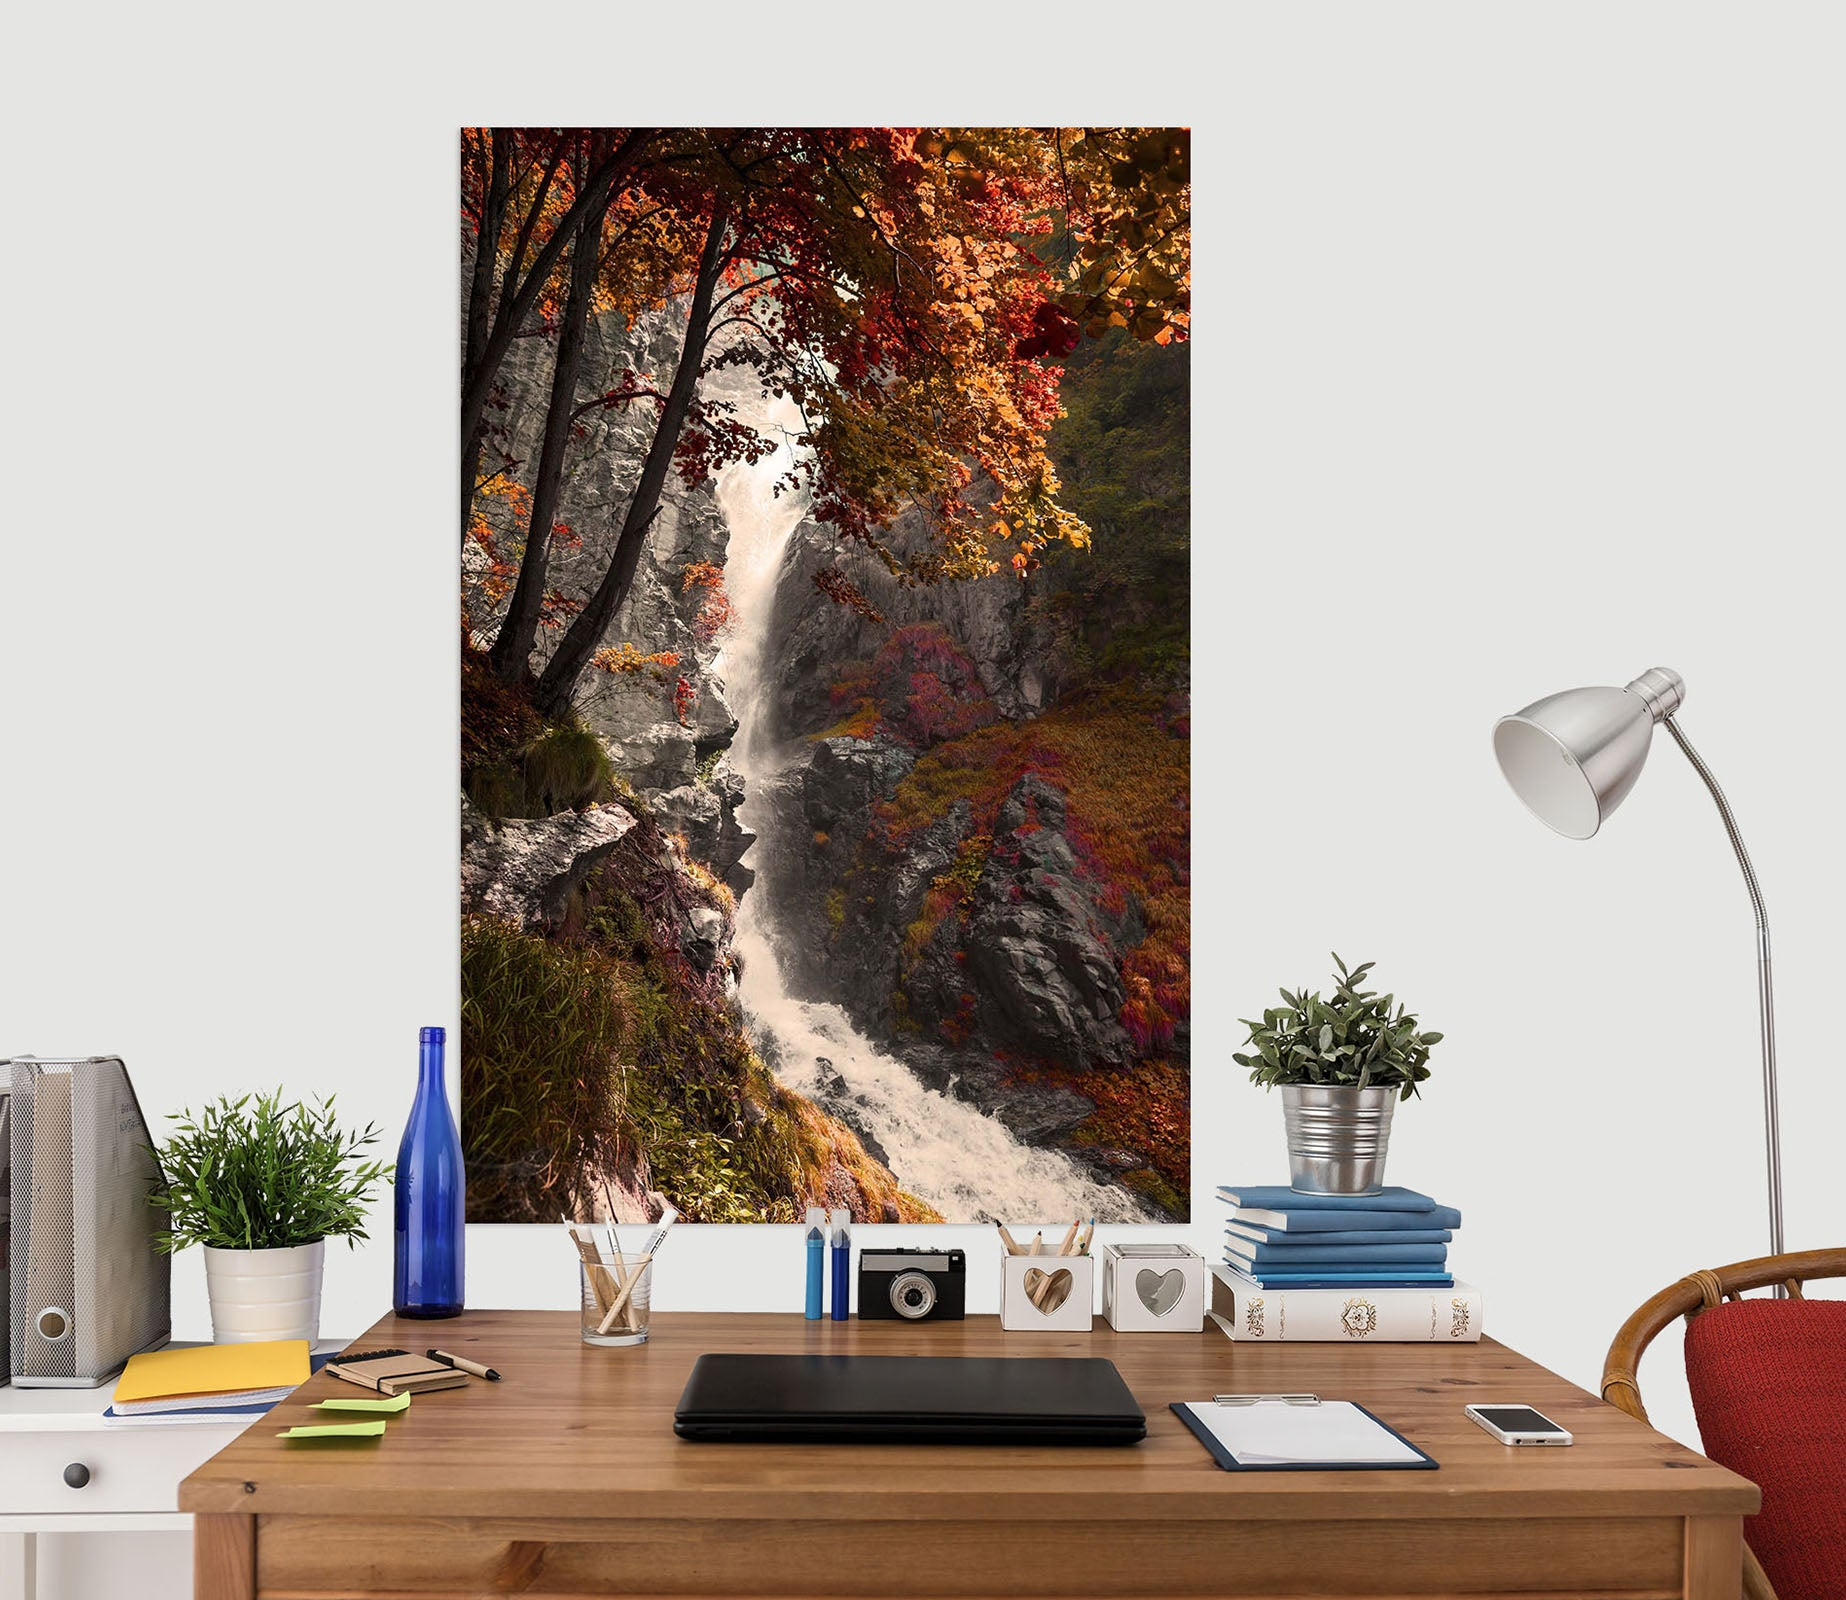 3D Valley Stream 232 Marco Carmassi Wall Sticker